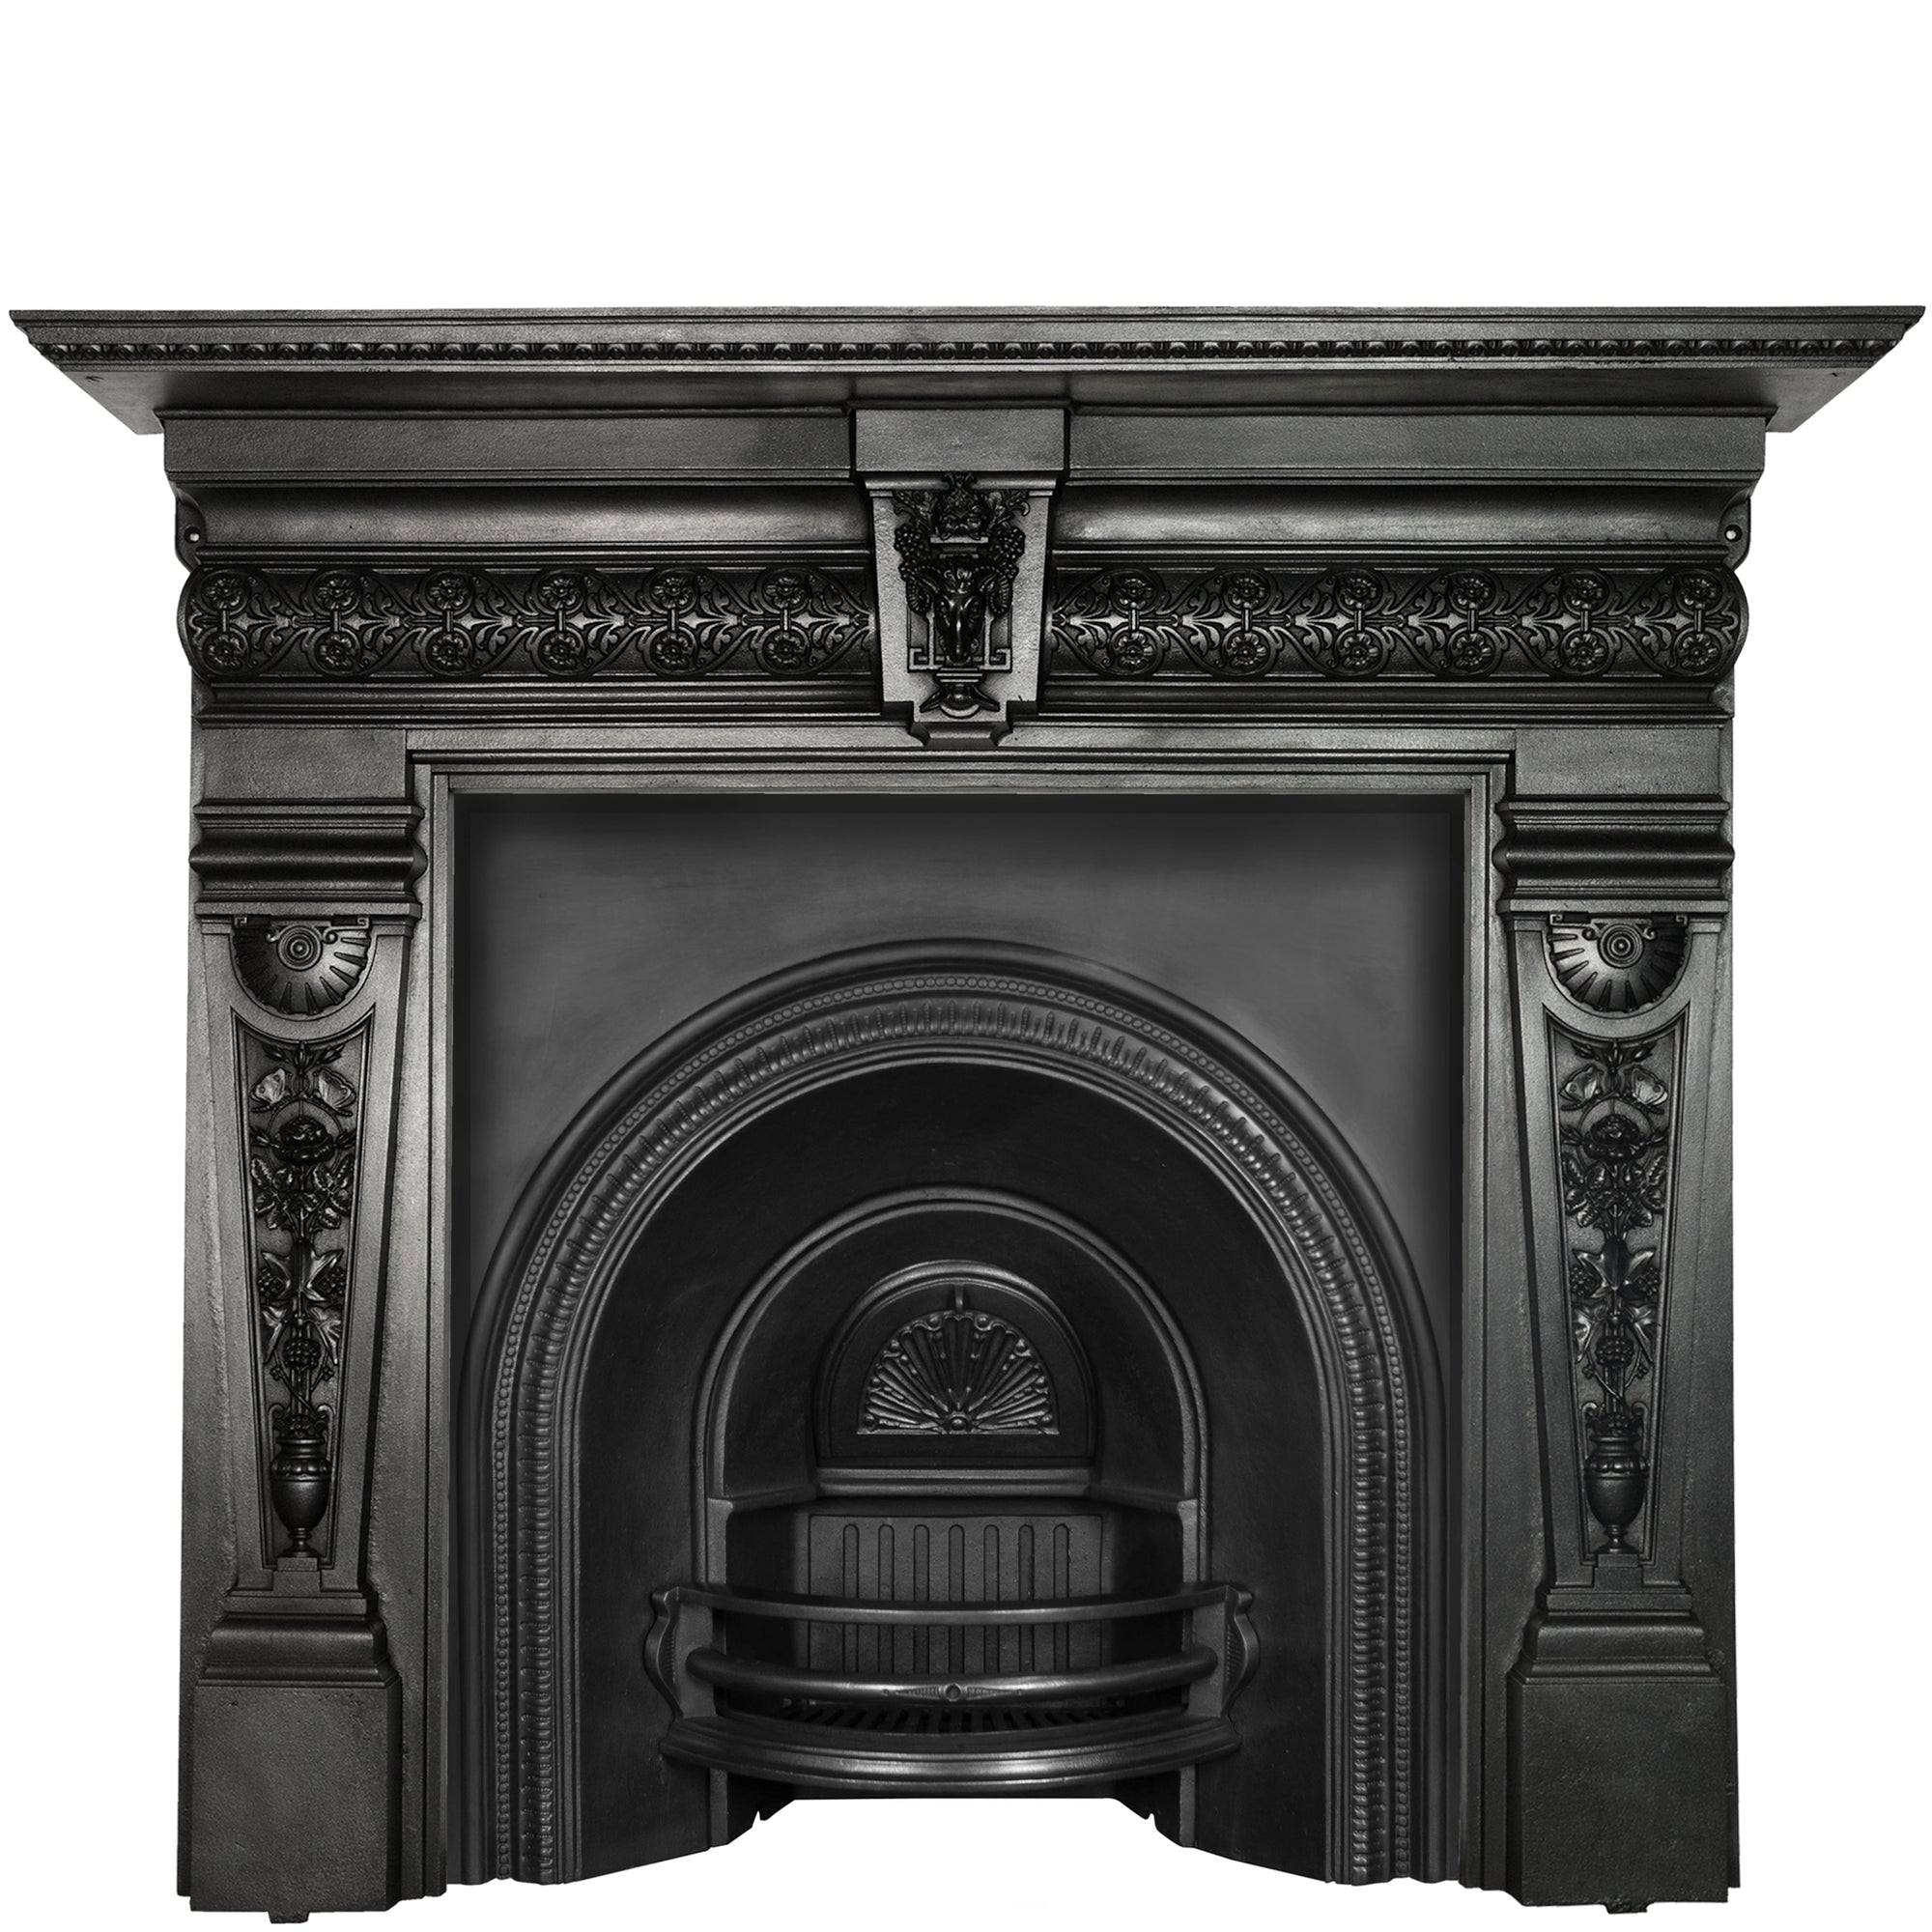 Antique Cast Iron Fireplace Surround with Rams Head | The Architectural Forum